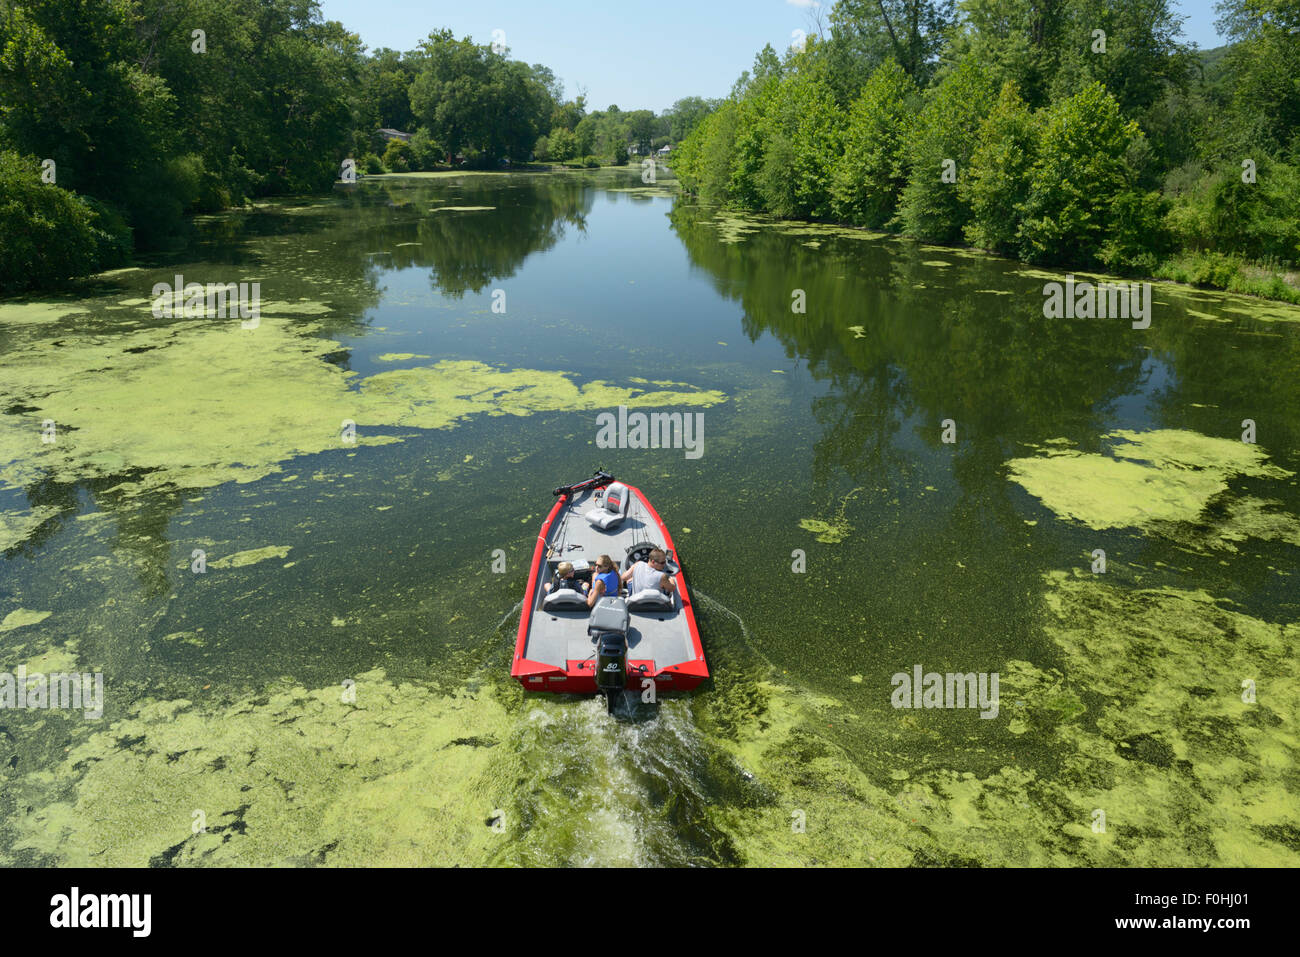 People in boat moving through polluted water undergoing eutrophication and an algae bloom, Ramapo River, NJ - Stock Image